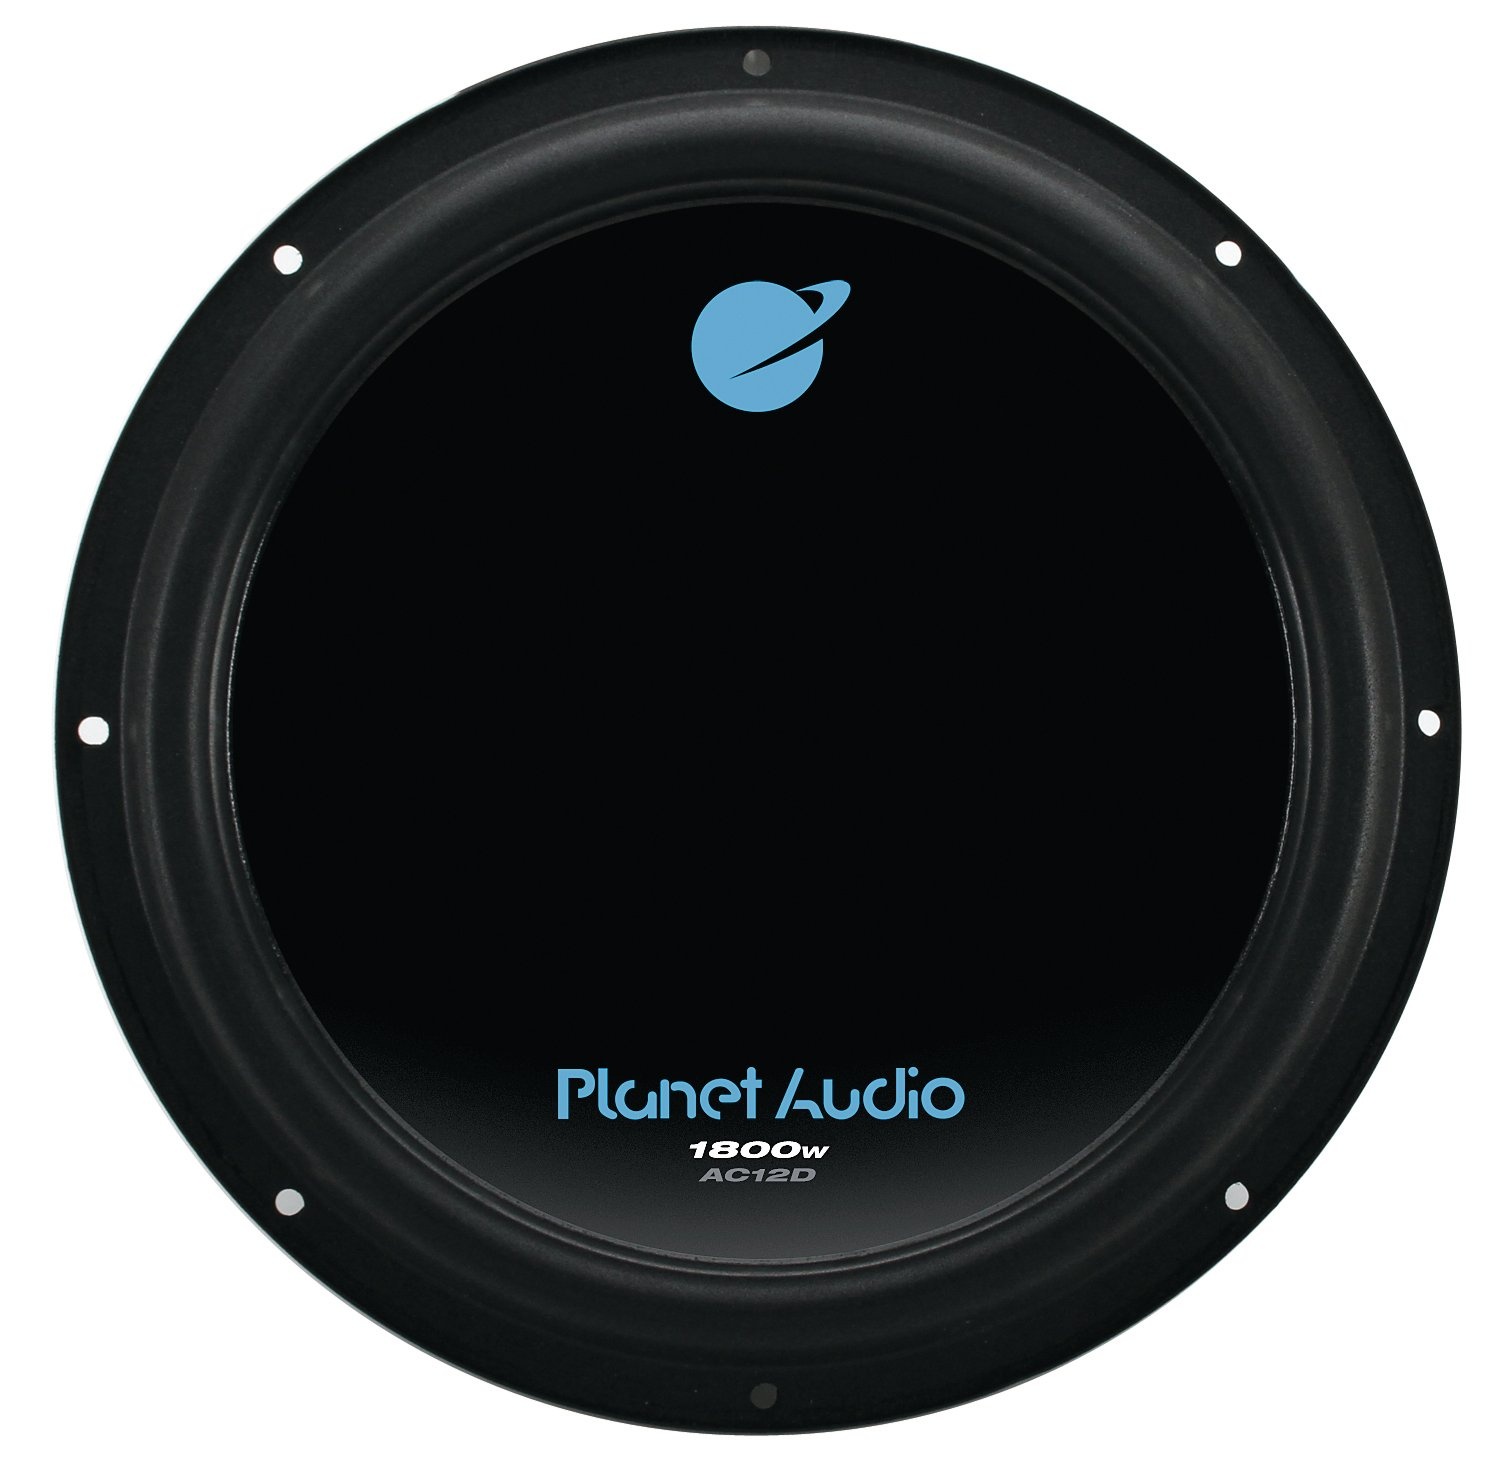 Amazon.com: Planet Audio AC12D 1800 Watt, 12 Inch, Dual 4 Ohm Voice Coil  Car Subwoofer: Planet Audio: Car Electronics